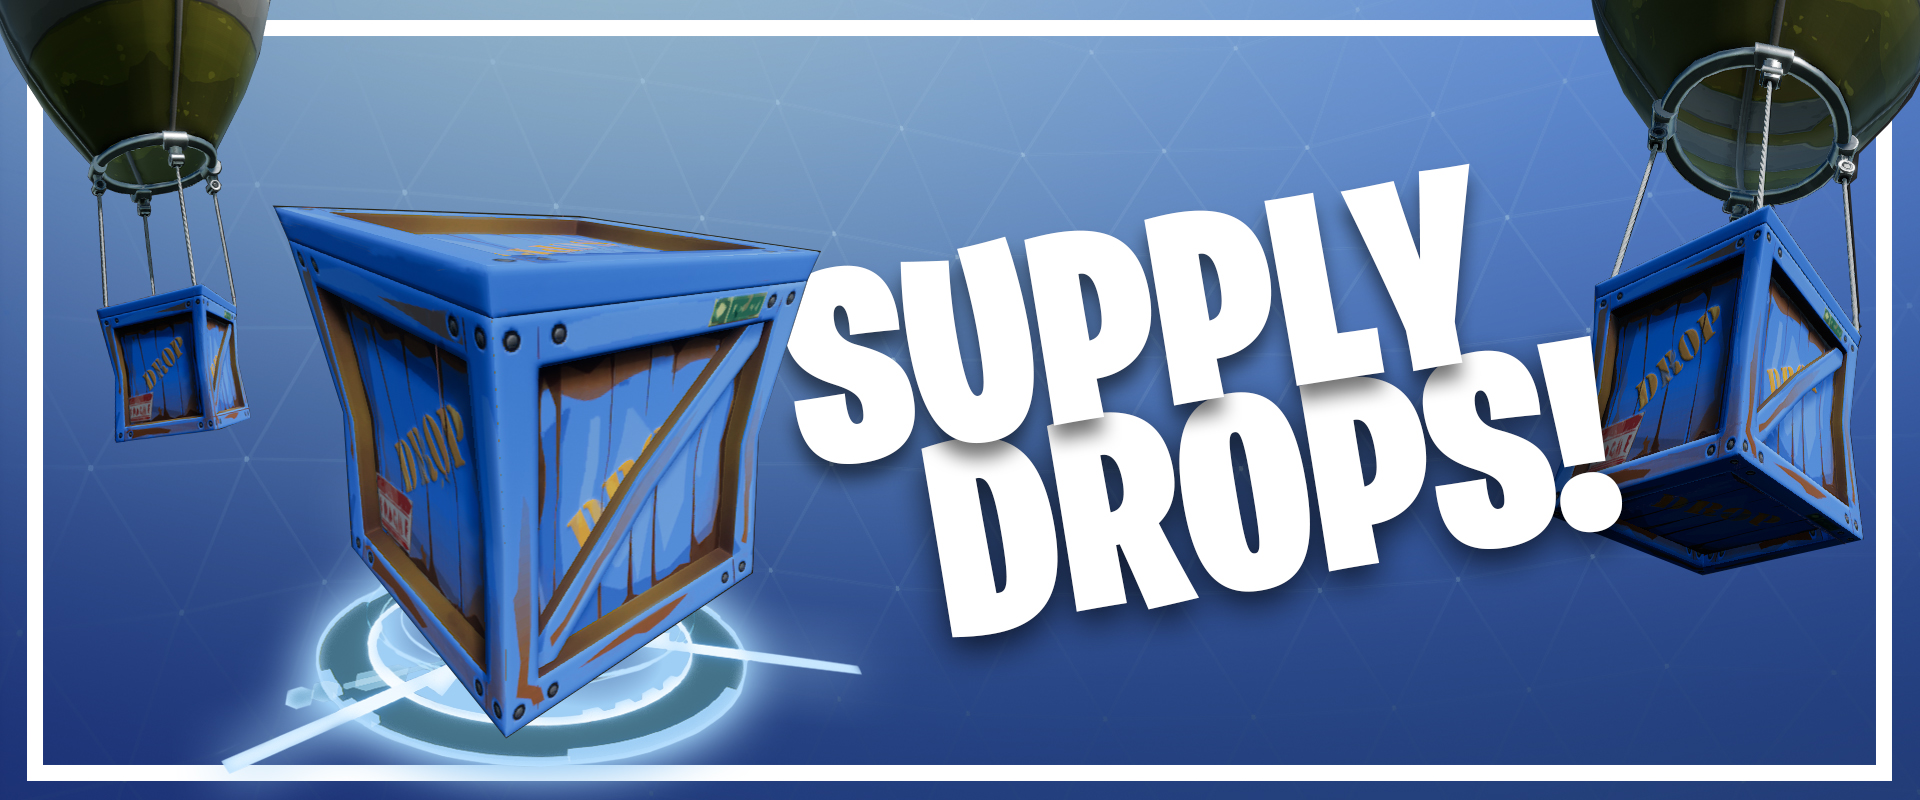 Fortnite%2Fblog%2Ffortnite-battle-royale-state-of-development%2Fsuppydrops-1920x800-3f3a4f25dc497ce0094a4b7500f52365946ed550